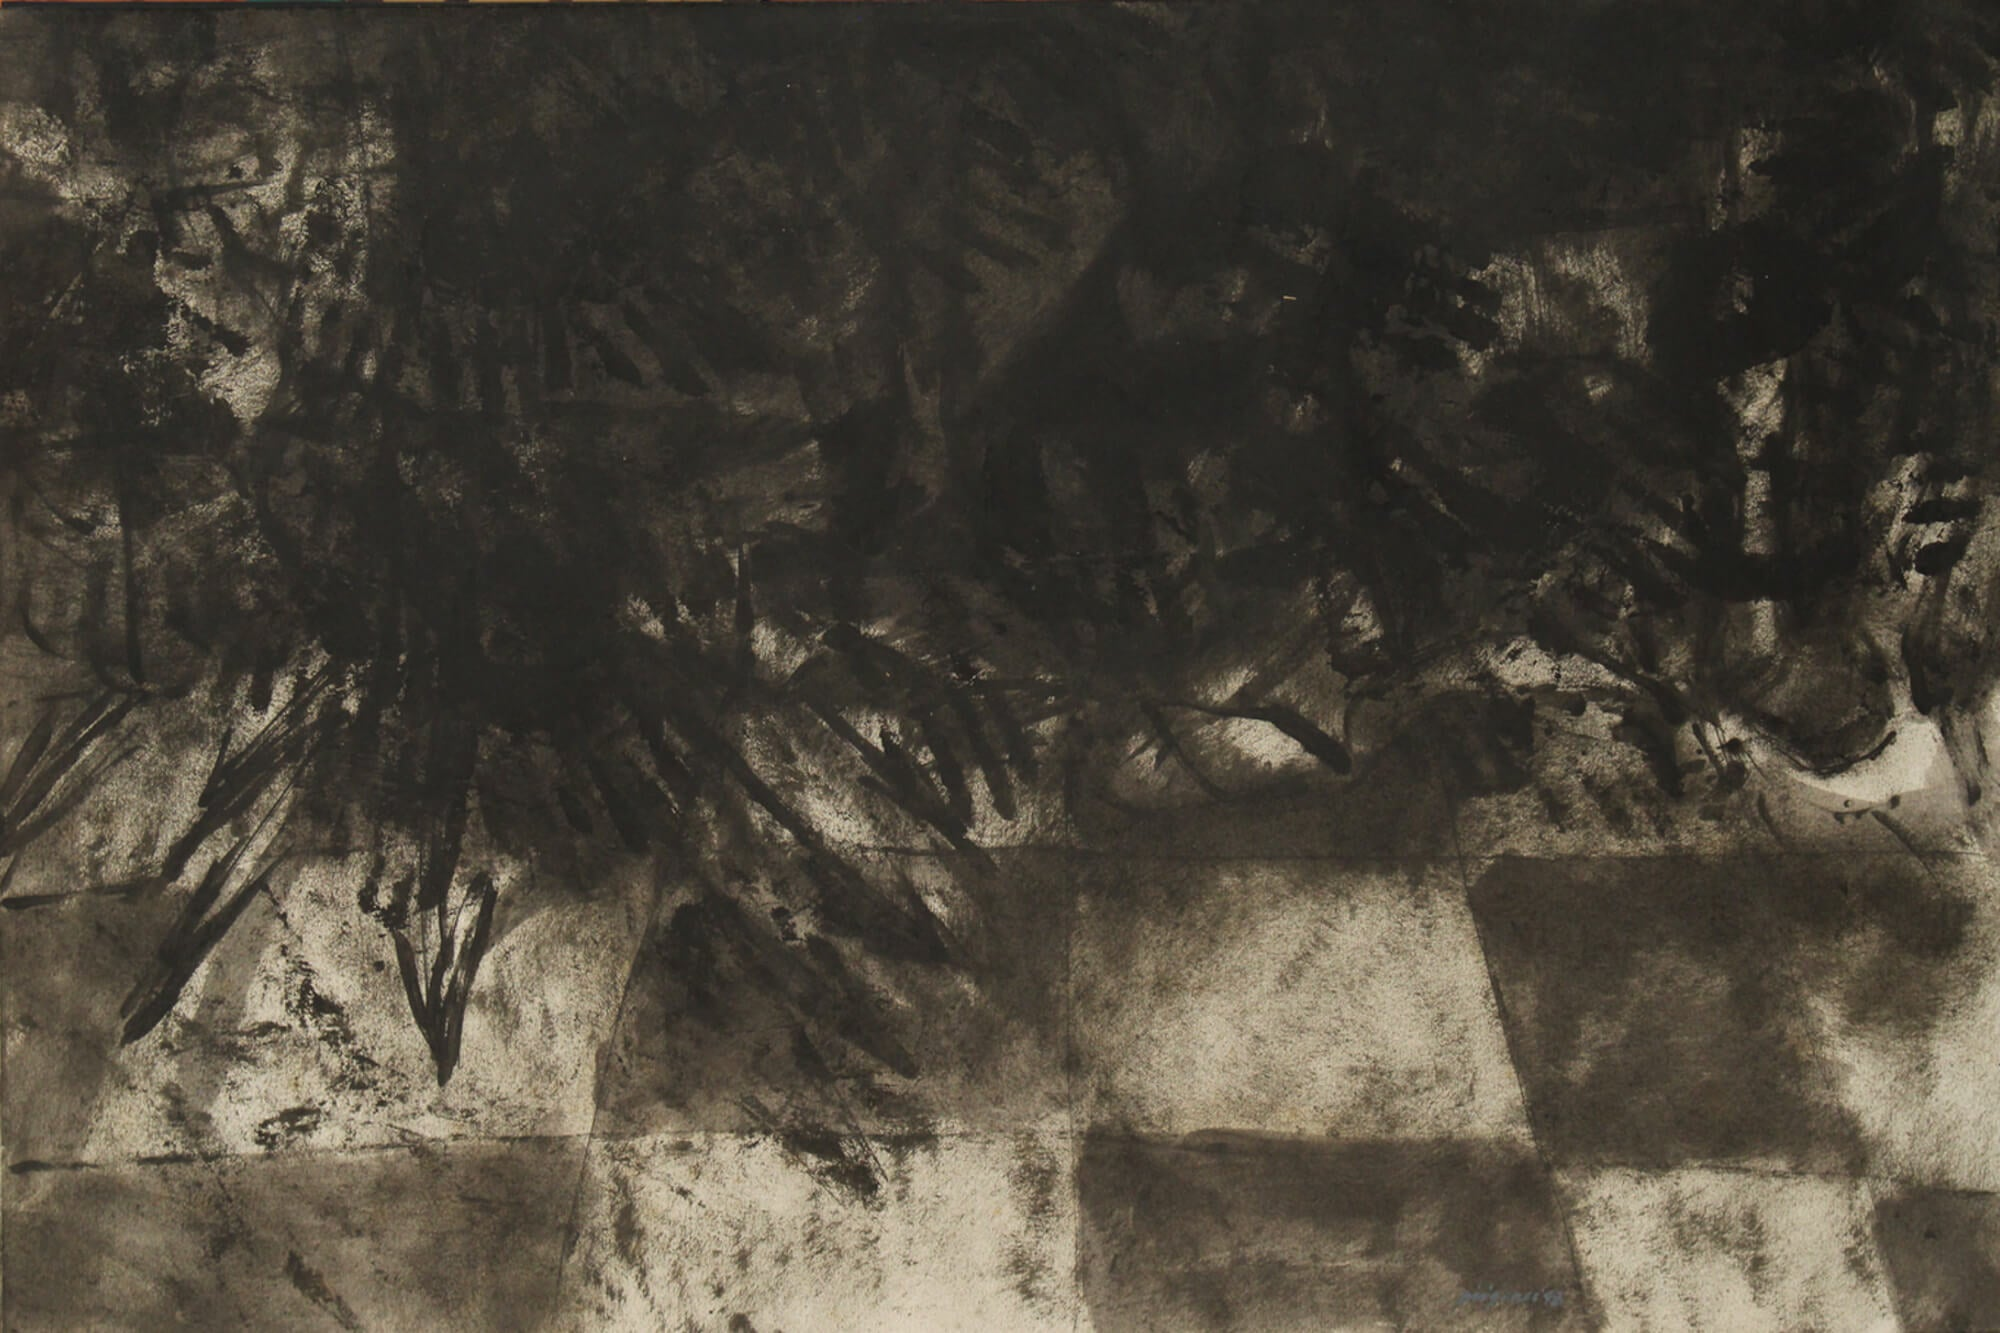 Drawing with carbon and encaustic about spiritual fluids by Diógenes Ballester.